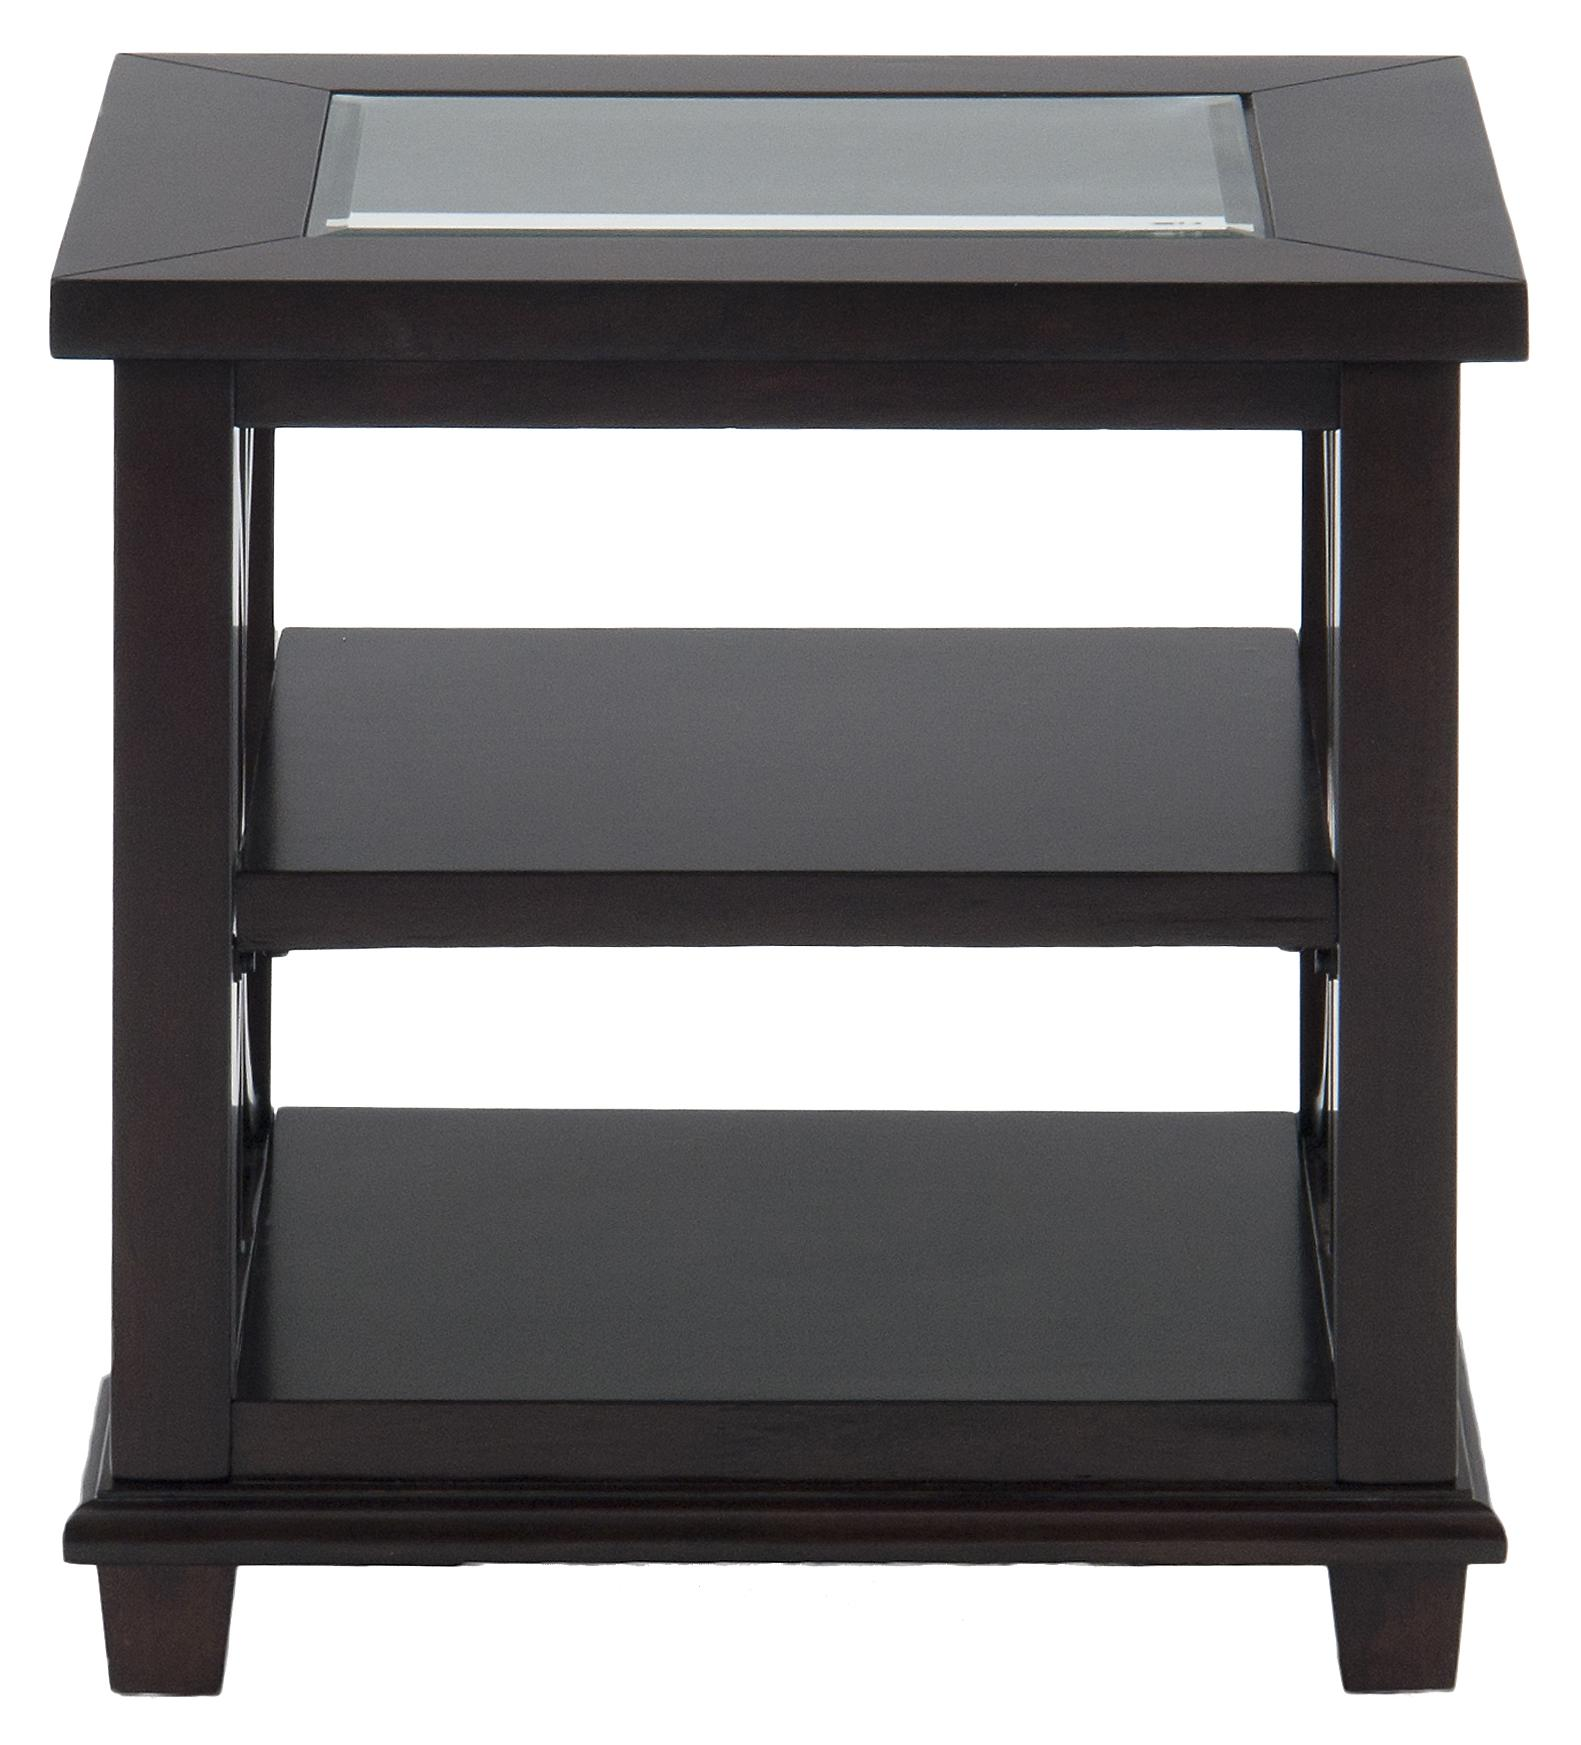 Panama Brown End Table w/ Glass Top by Jofran at Dream Home Interiors